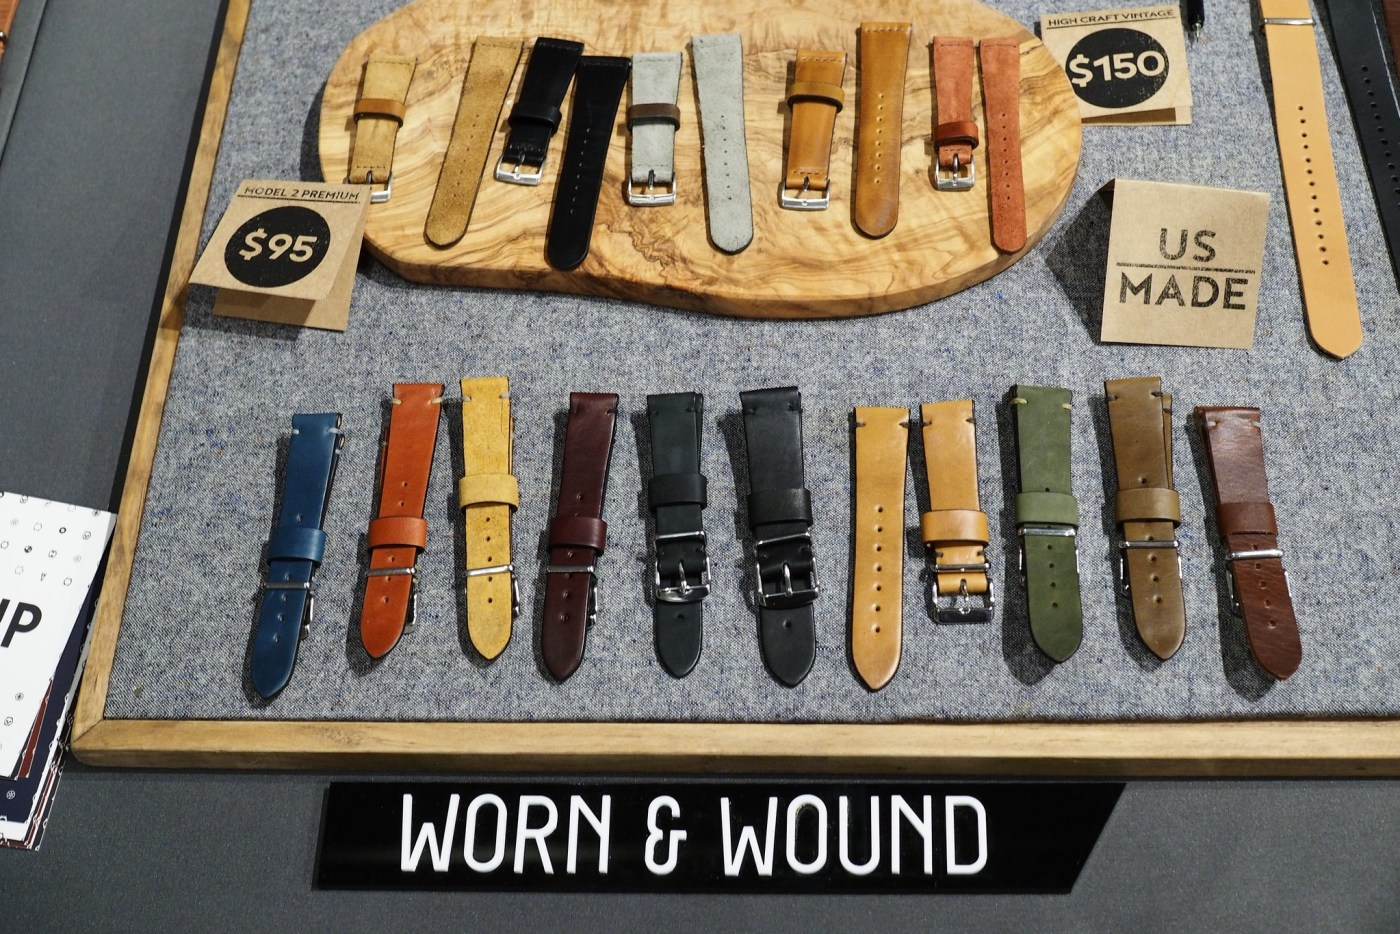 Worn & Wound Premium leather watch straps